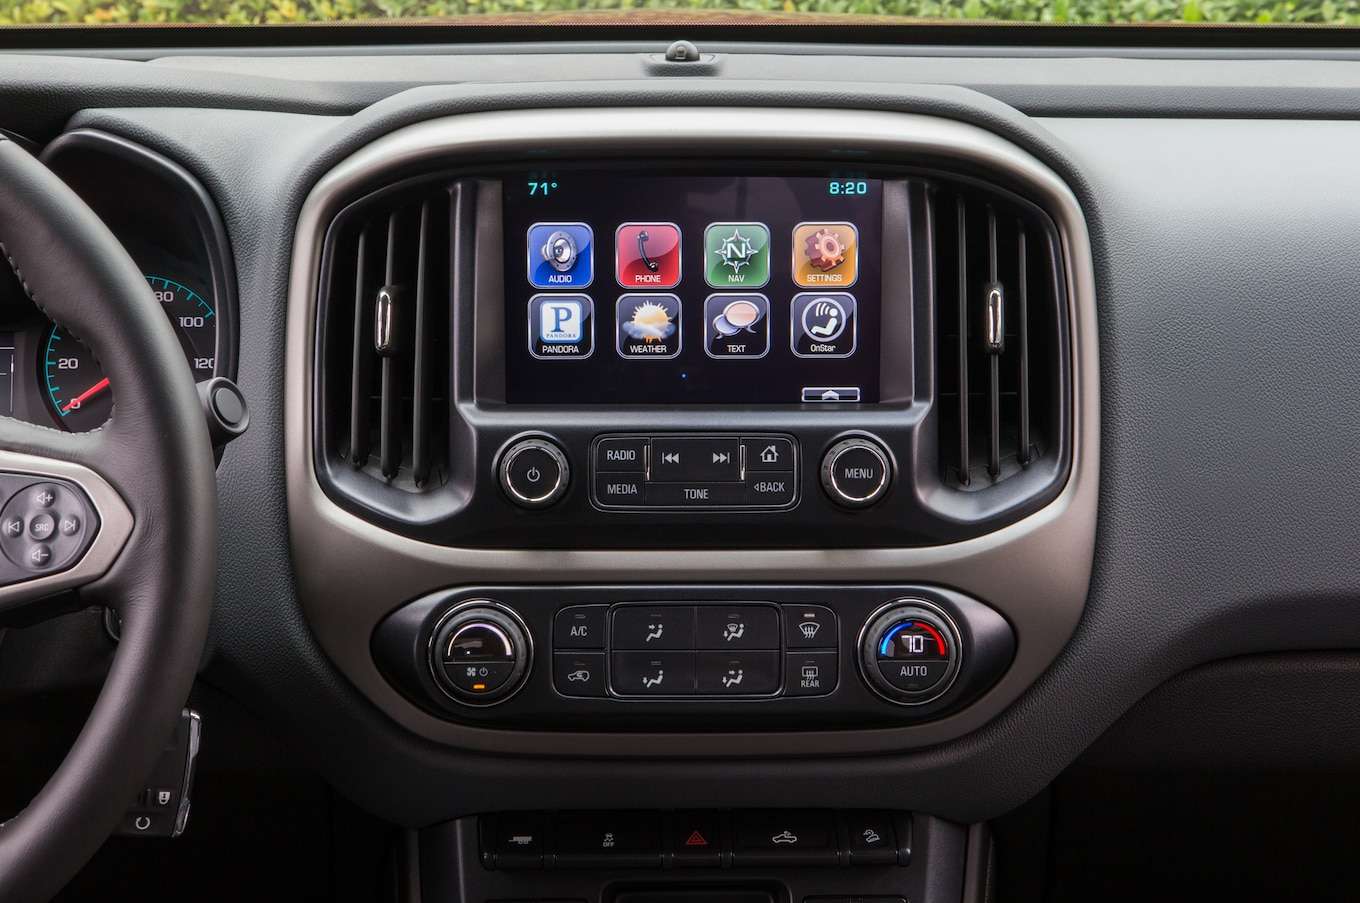 chevy radio 57 er diagram for business management system 2015 chevrolet colorado reviews and rating motor trend